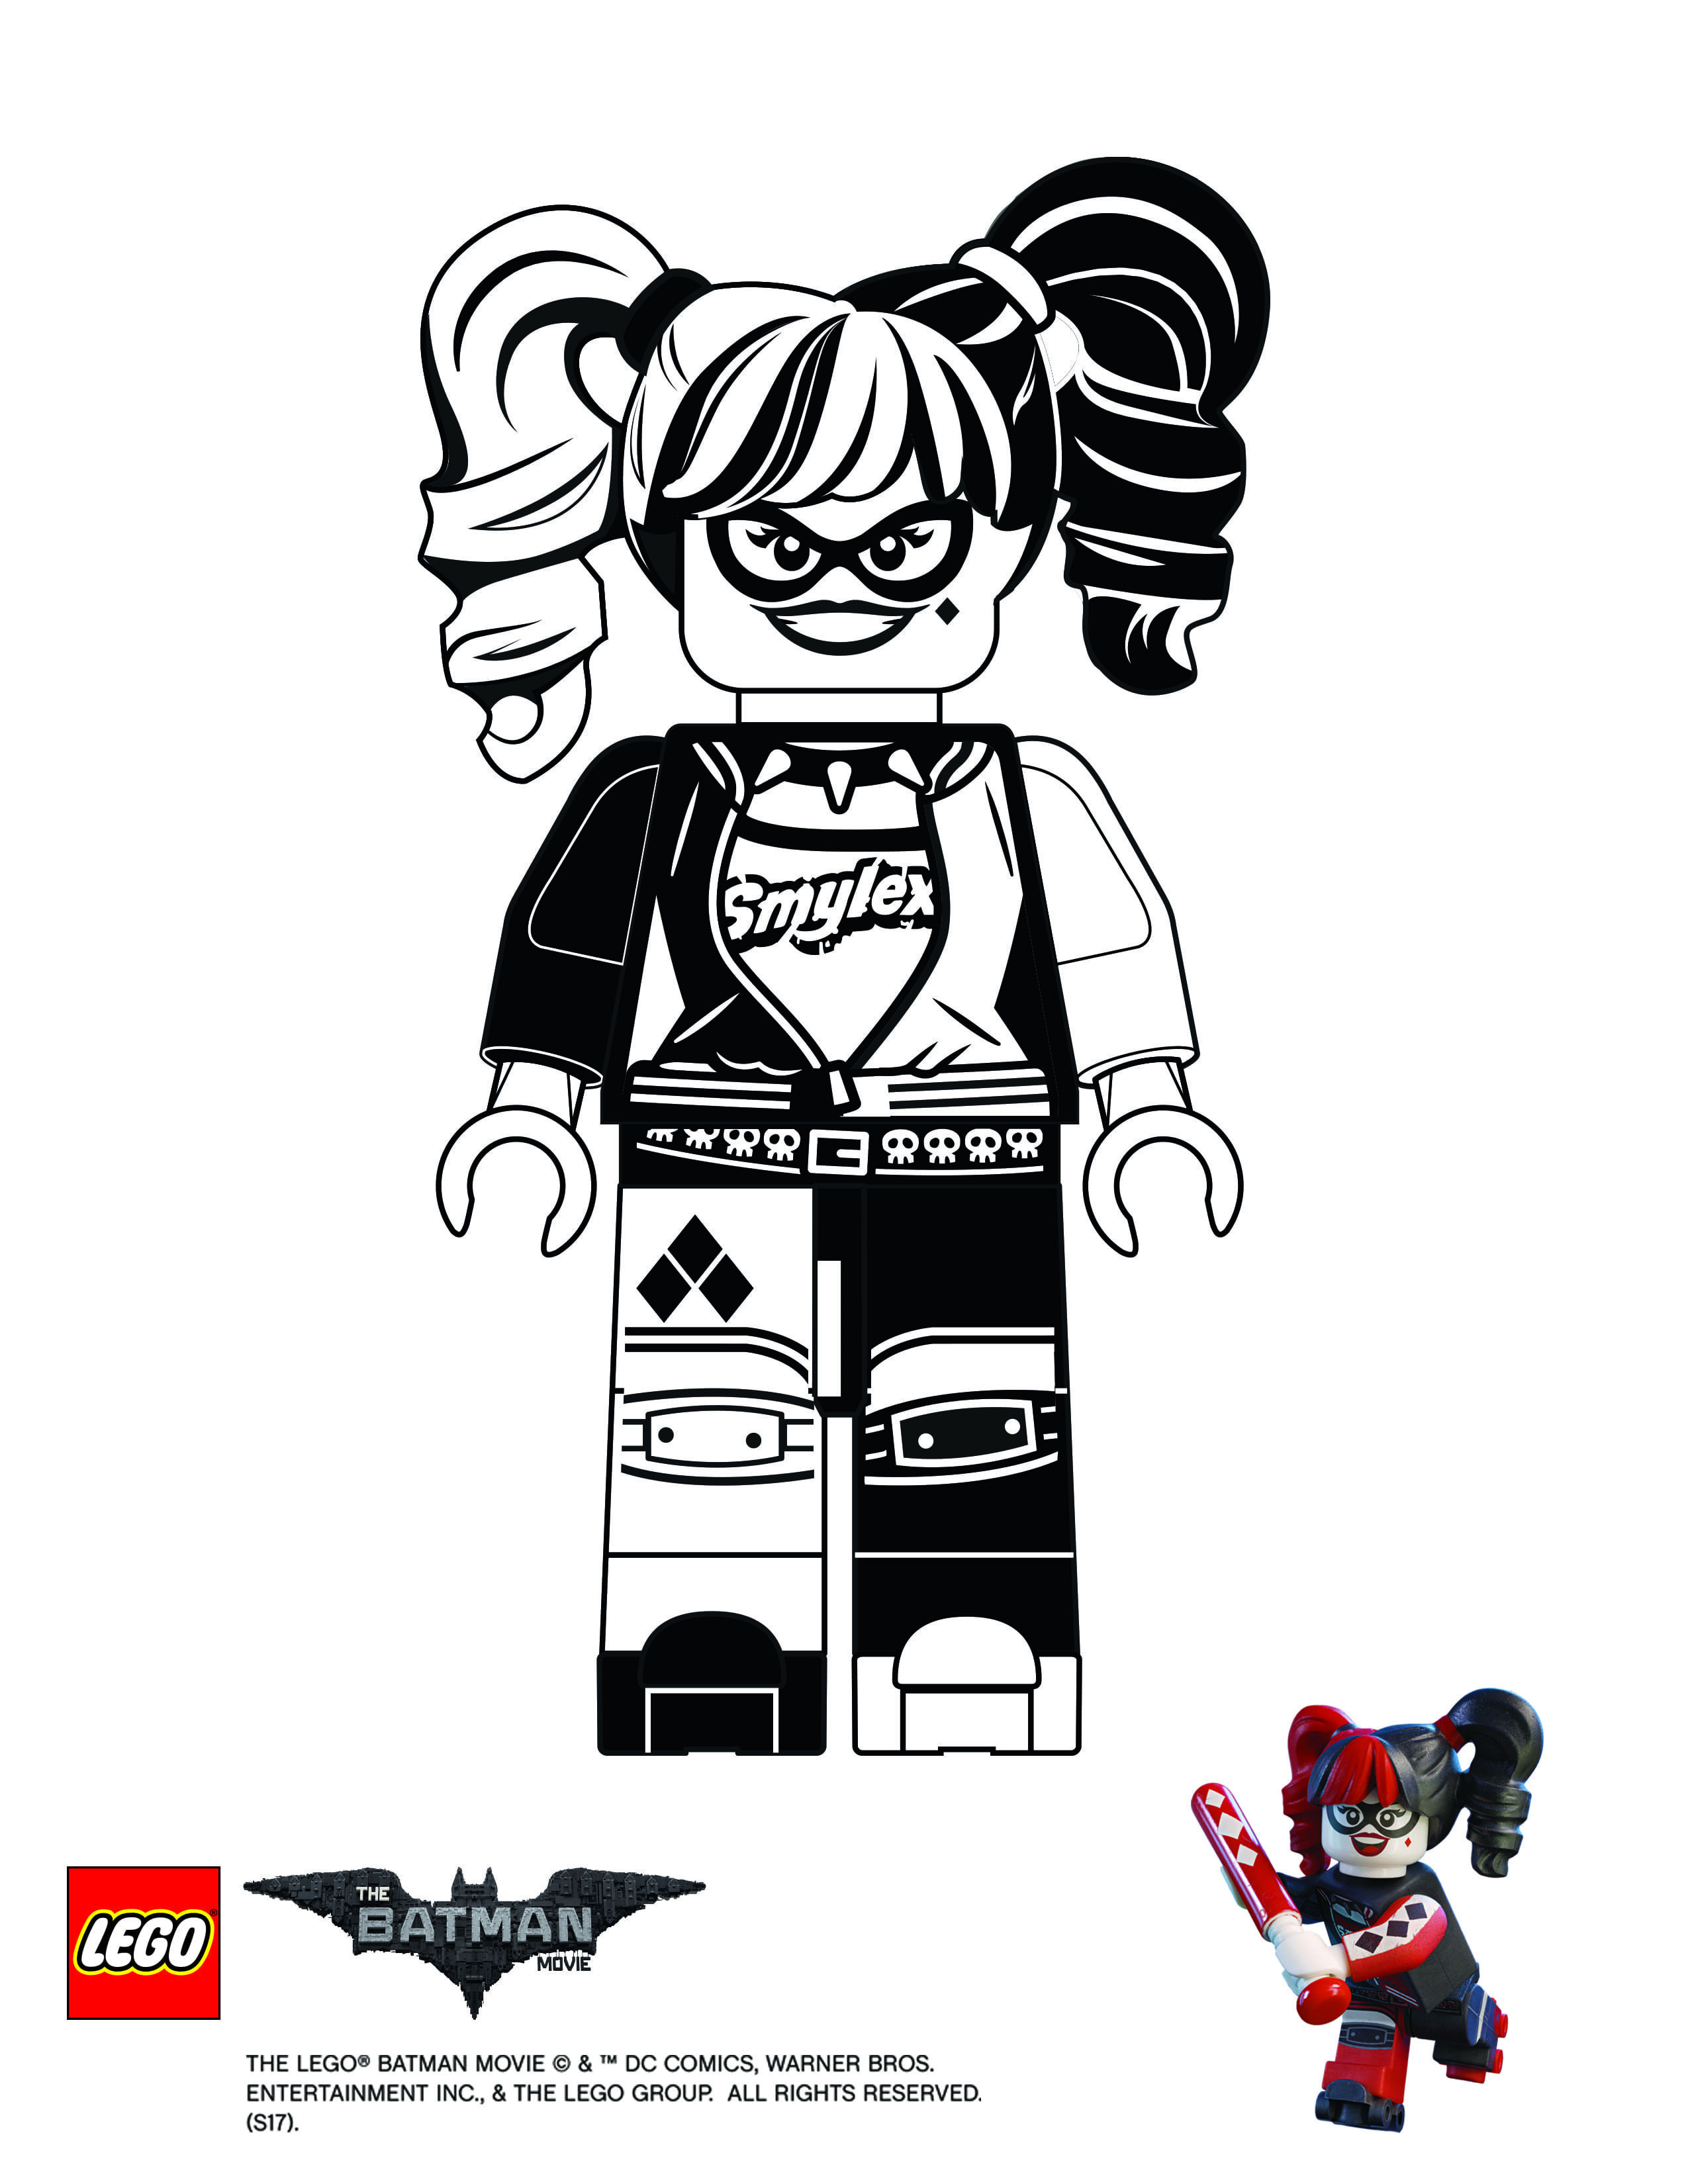 Ausmalbild Lego Batman Neu Coloring Page Harley Quinn the Lego Batman Movie Schön Ausmalbilder Bild